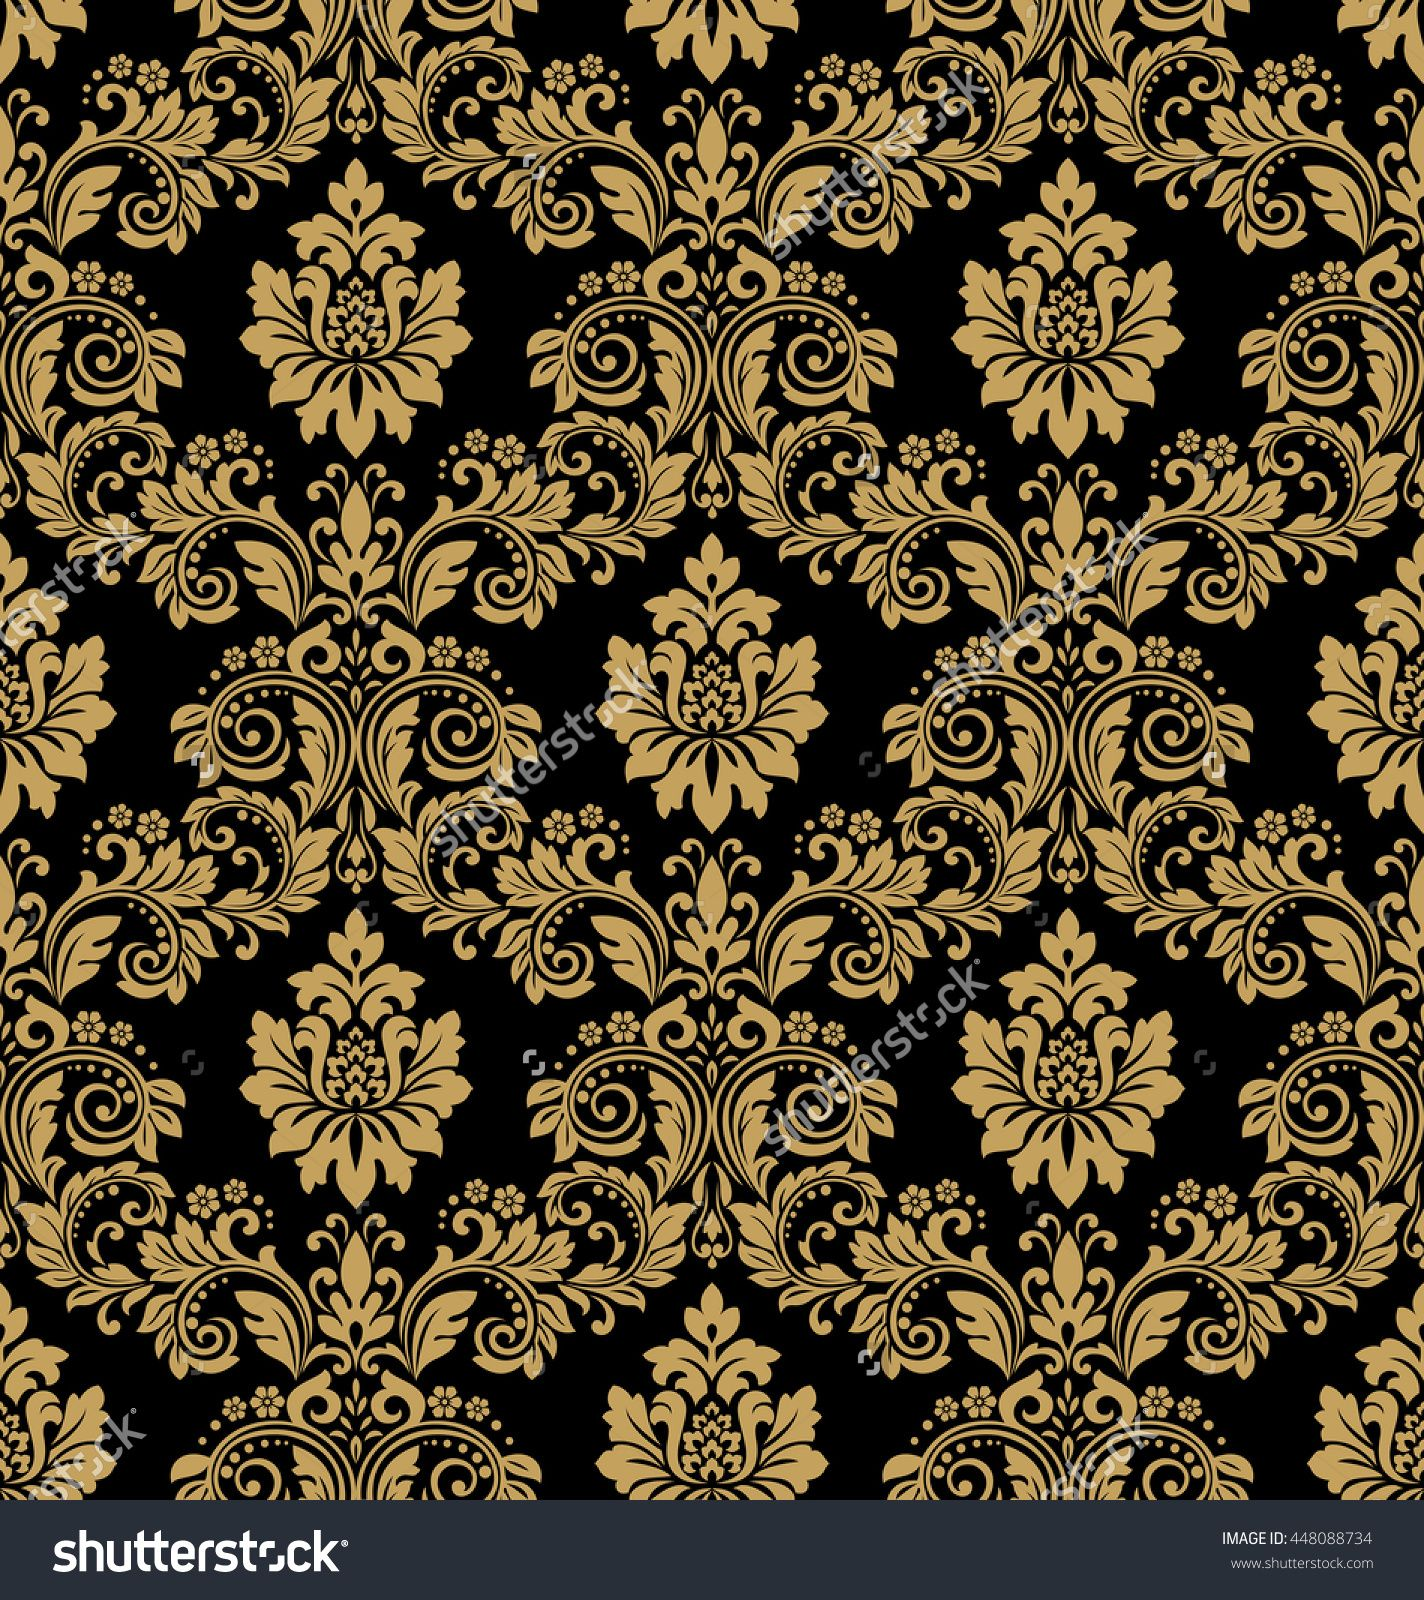 Floral pattern wallpaper baroque damask seamless vector for Baroque style wallpaper